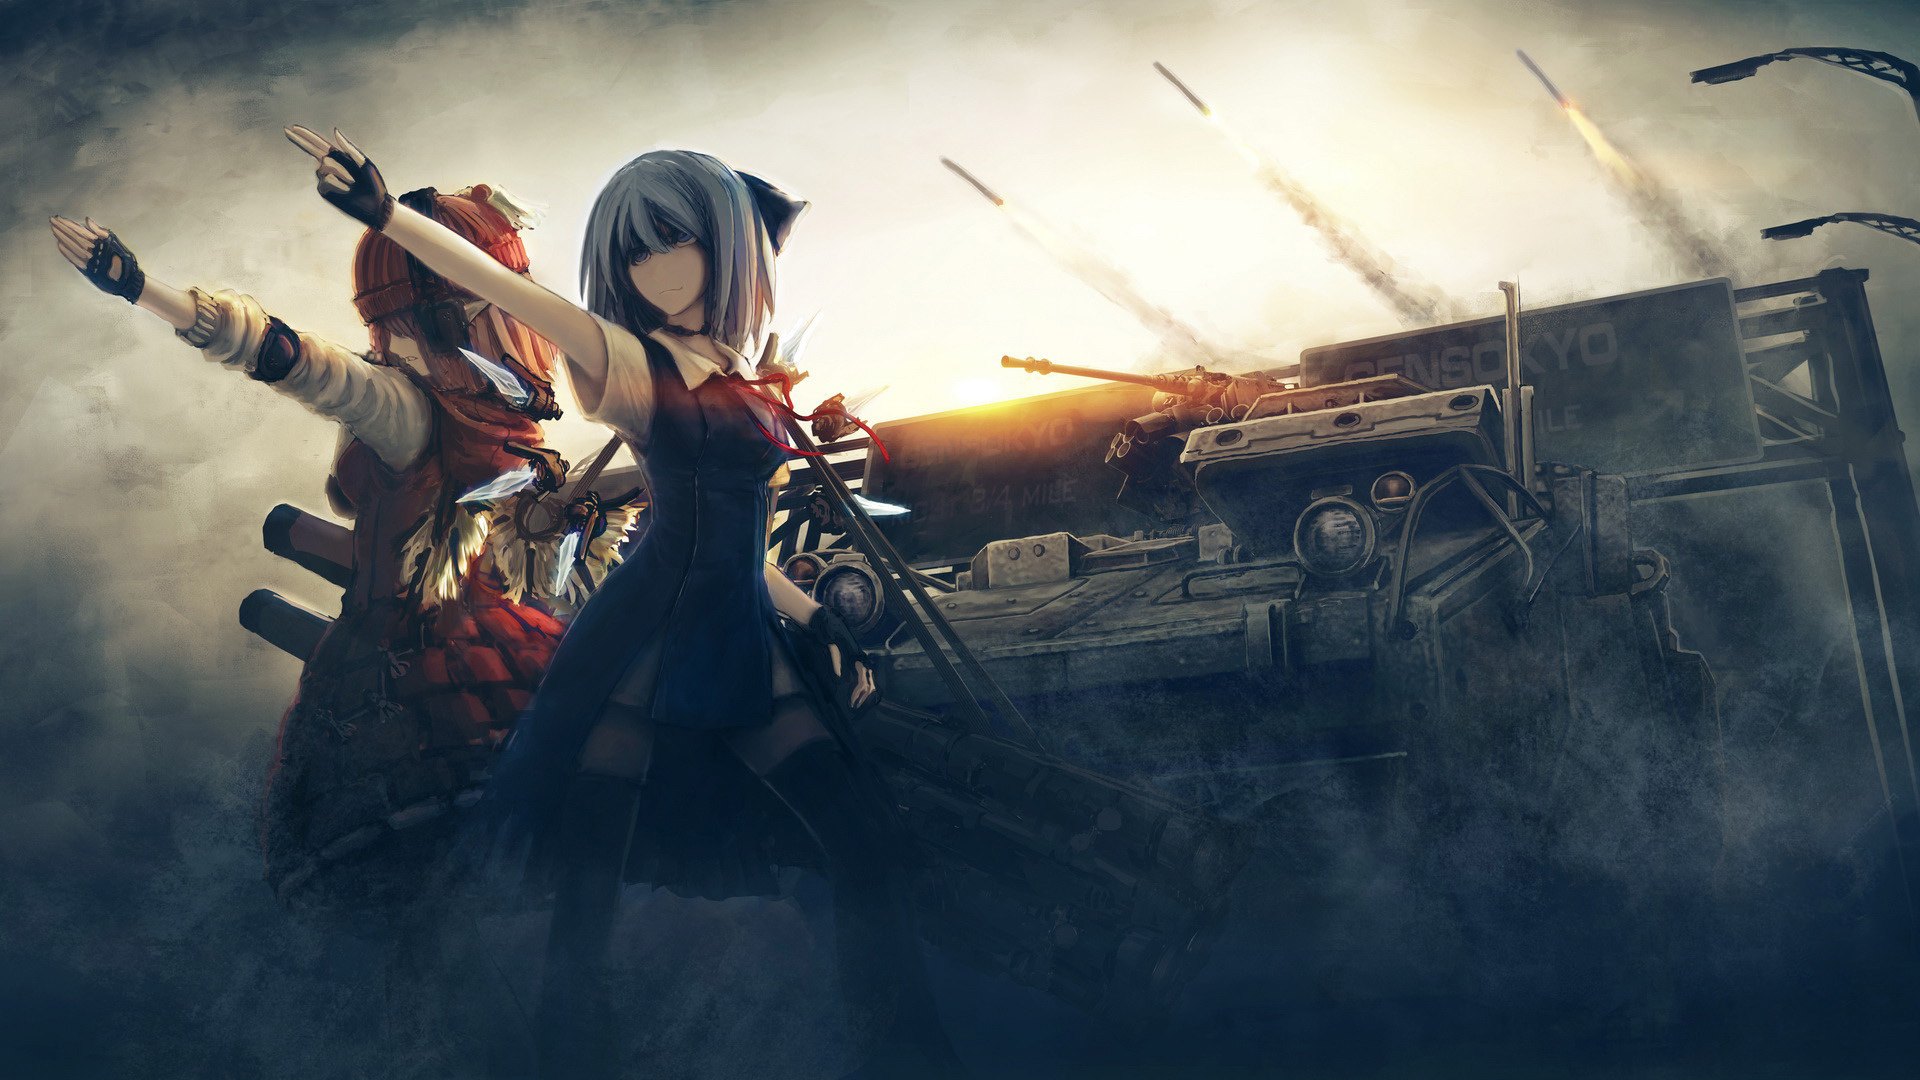 Anime Wallpapers, HD, Widescreen, Desktop, Pictures, Images ...